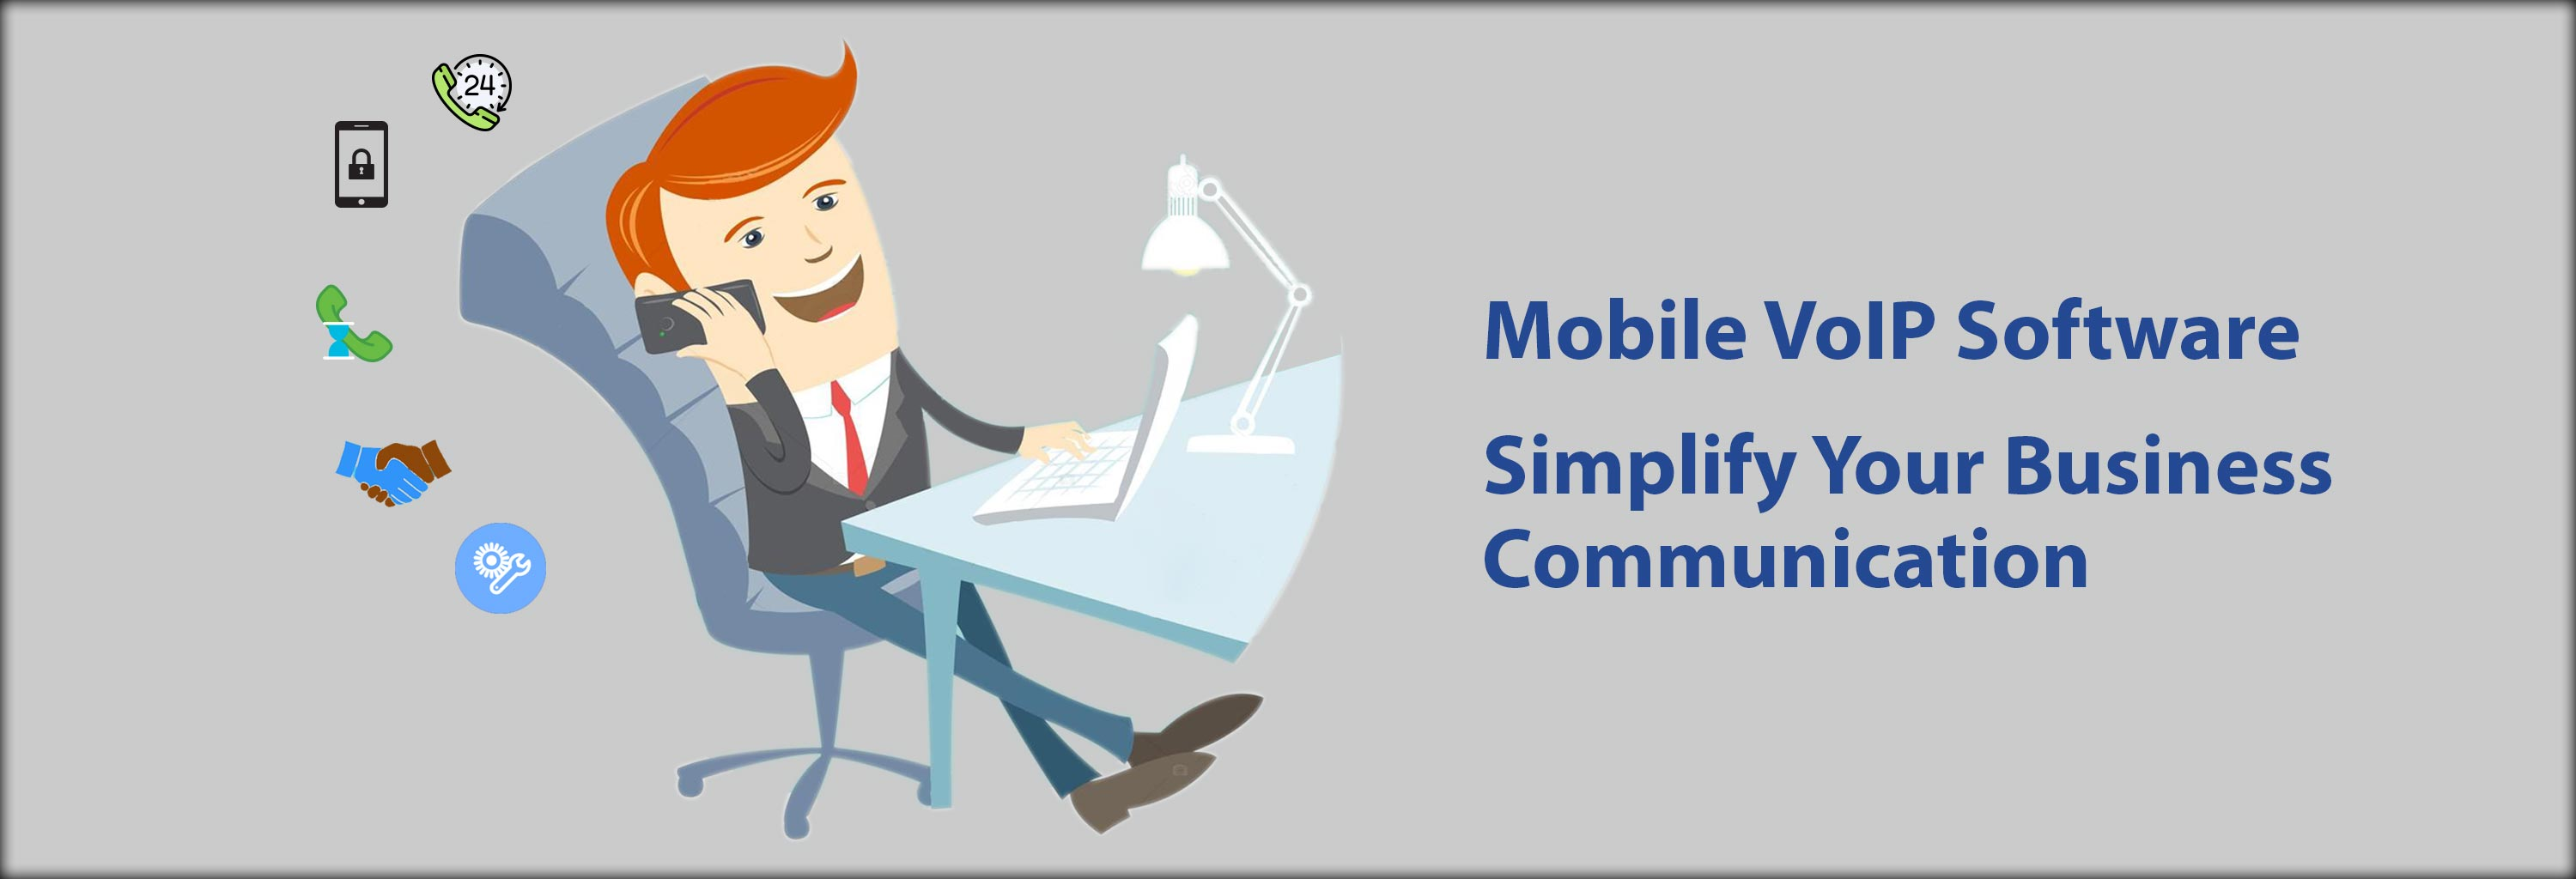 Mobile VoIP Software